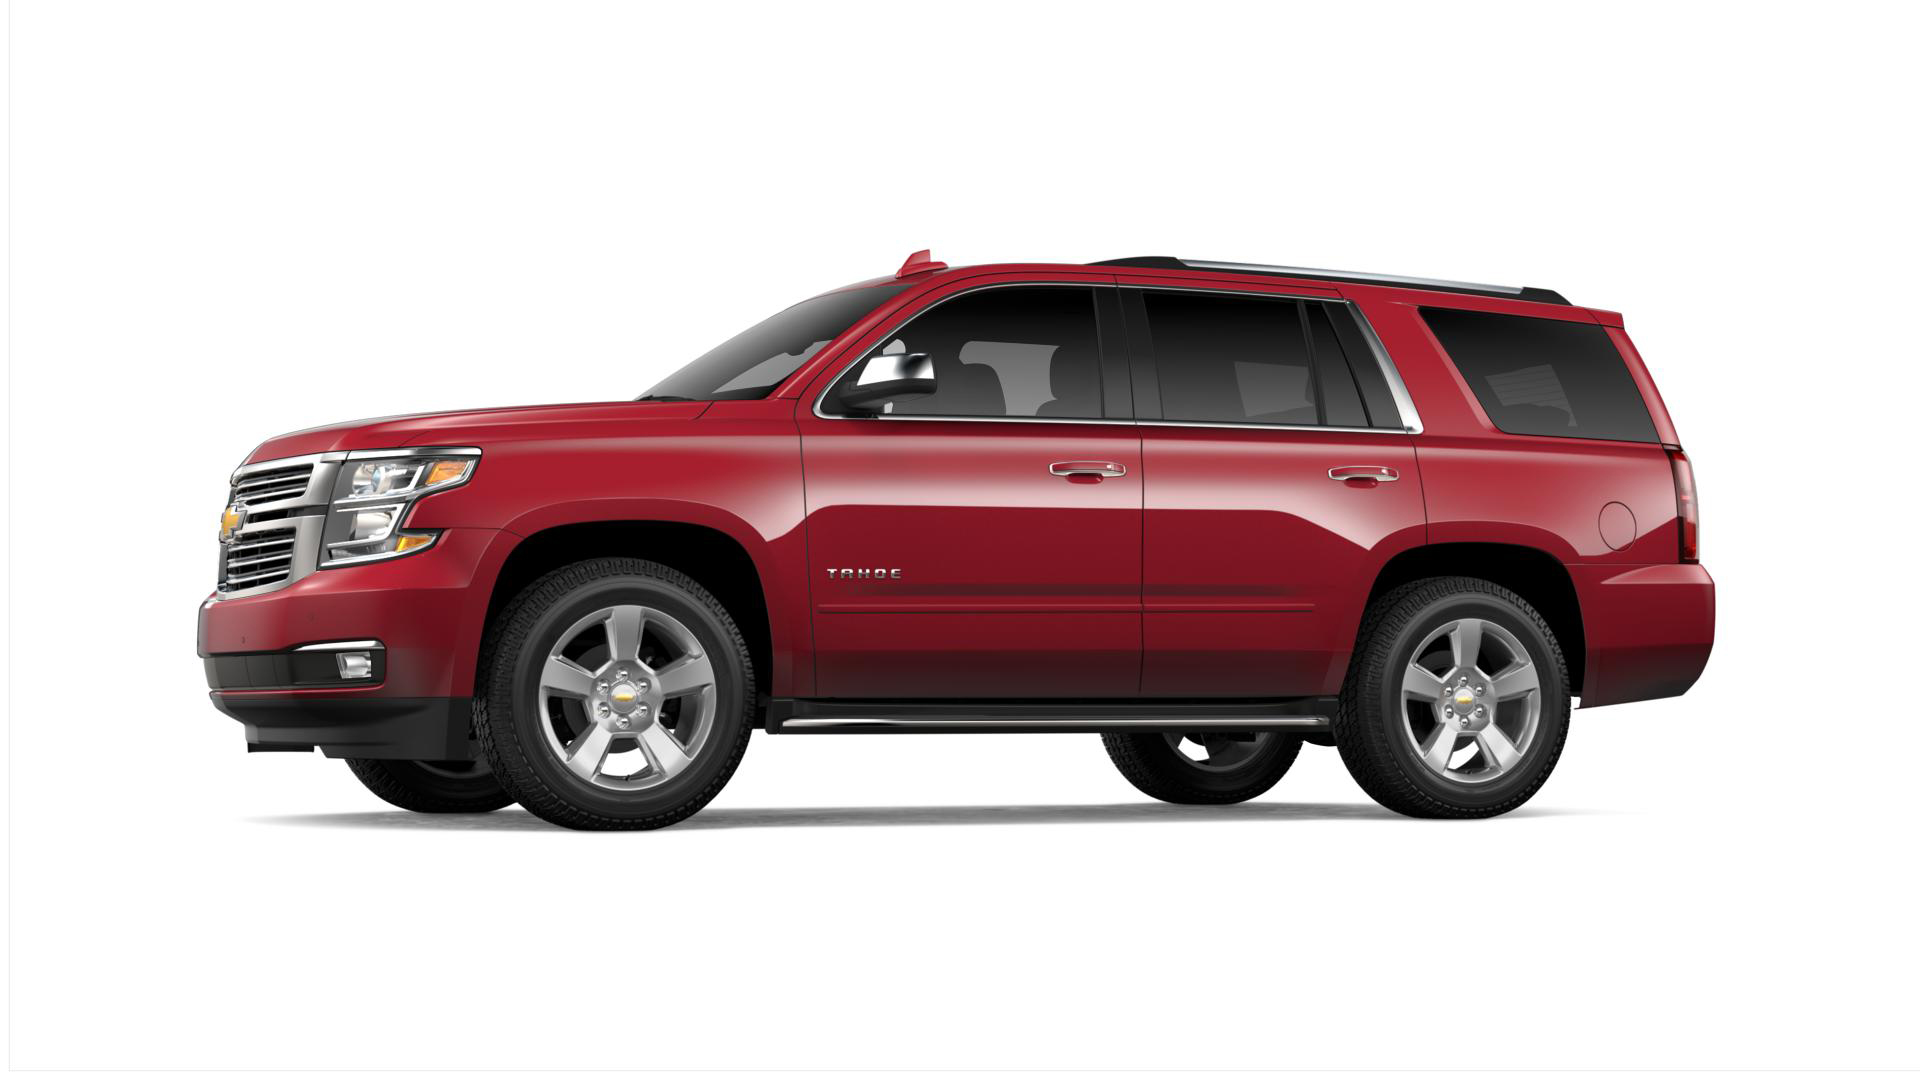 2018 chevrolet tahoe specifications info cox chevrolet. Black Bedroom Furniture Sets. Home Design Ideas